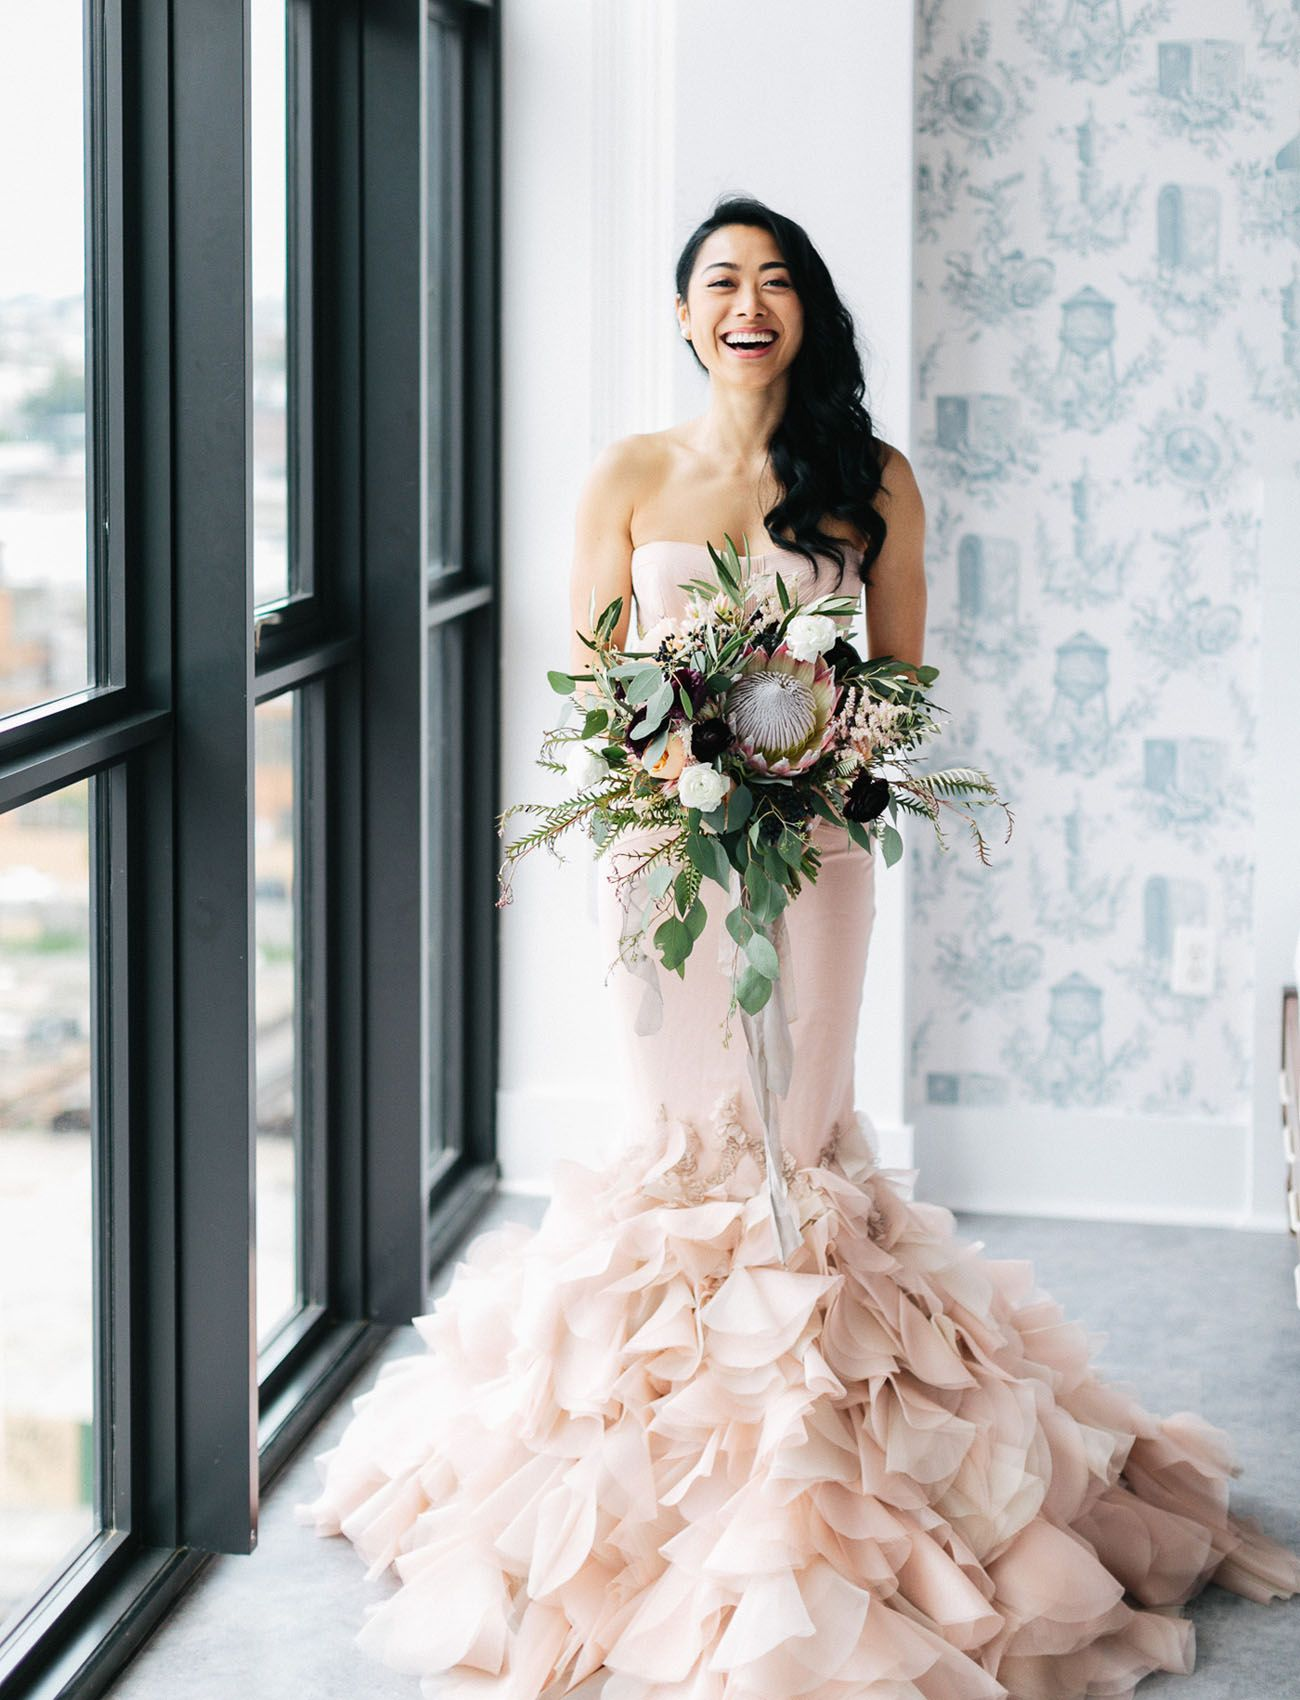 The Bride Wore A Stunning Blush Dress At This Industrial Modern